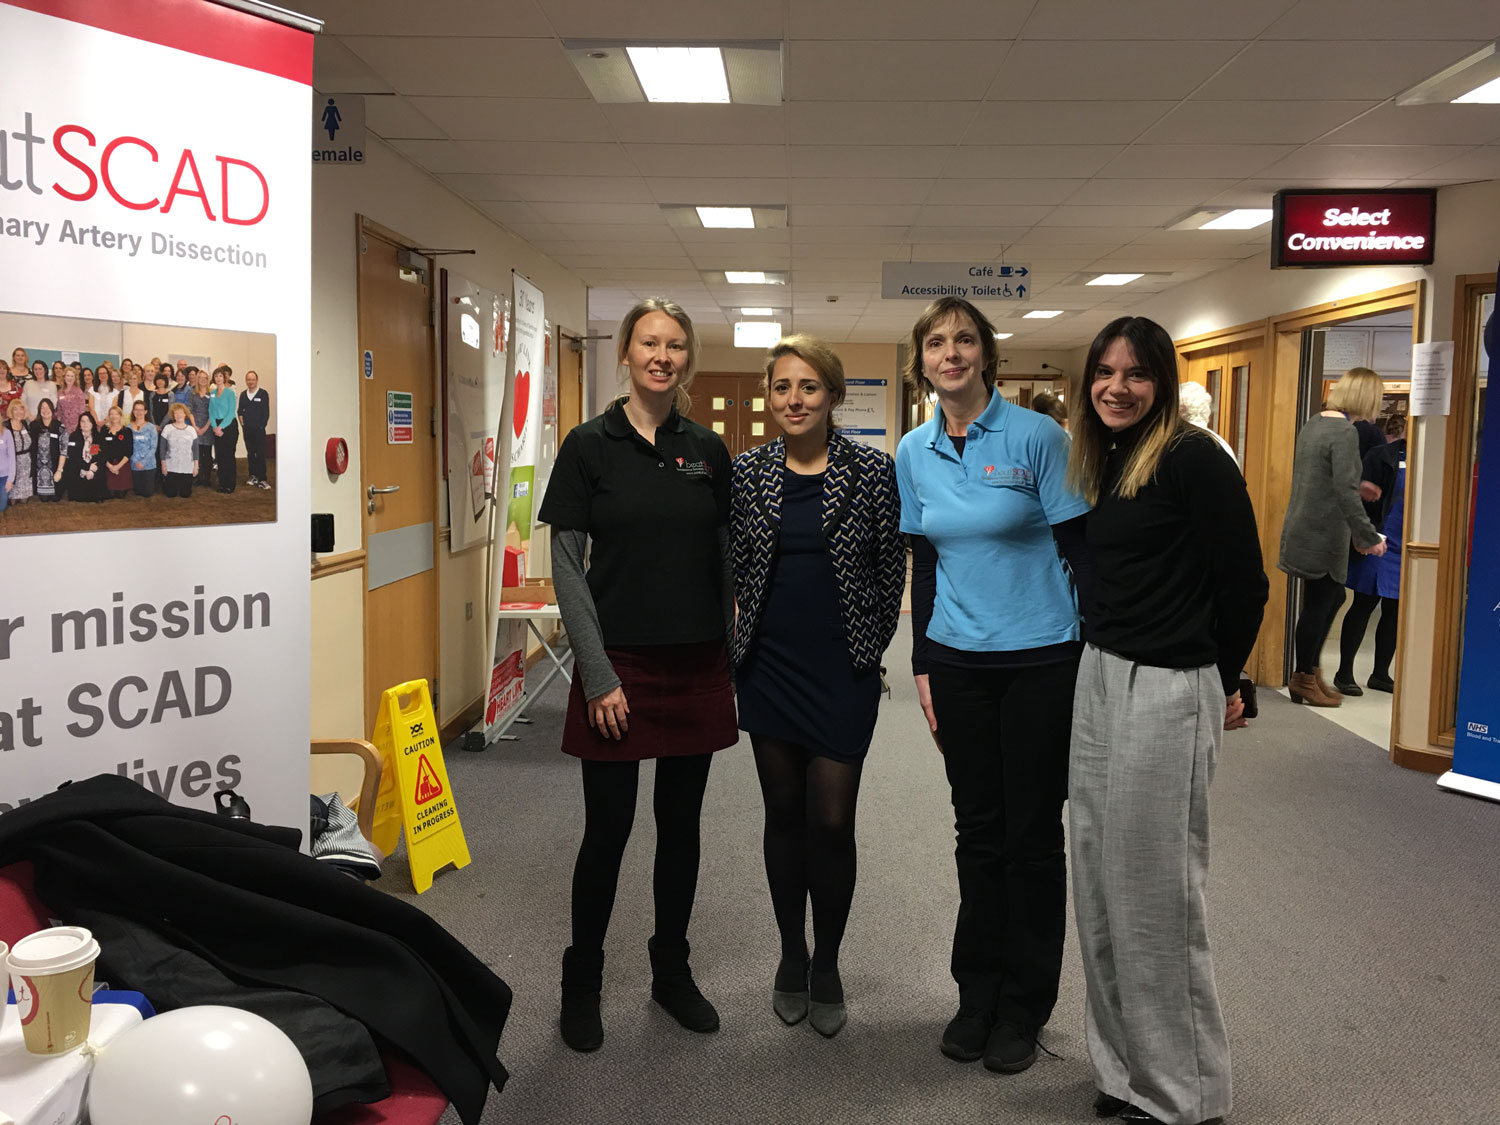 (l to r) Rebecca Breslin, Dr Abi Al-Hussaini (SCAD researcher), Catherine Beck, Fiona Bailey (Orange Juice Communications) at Glenfield Hospital